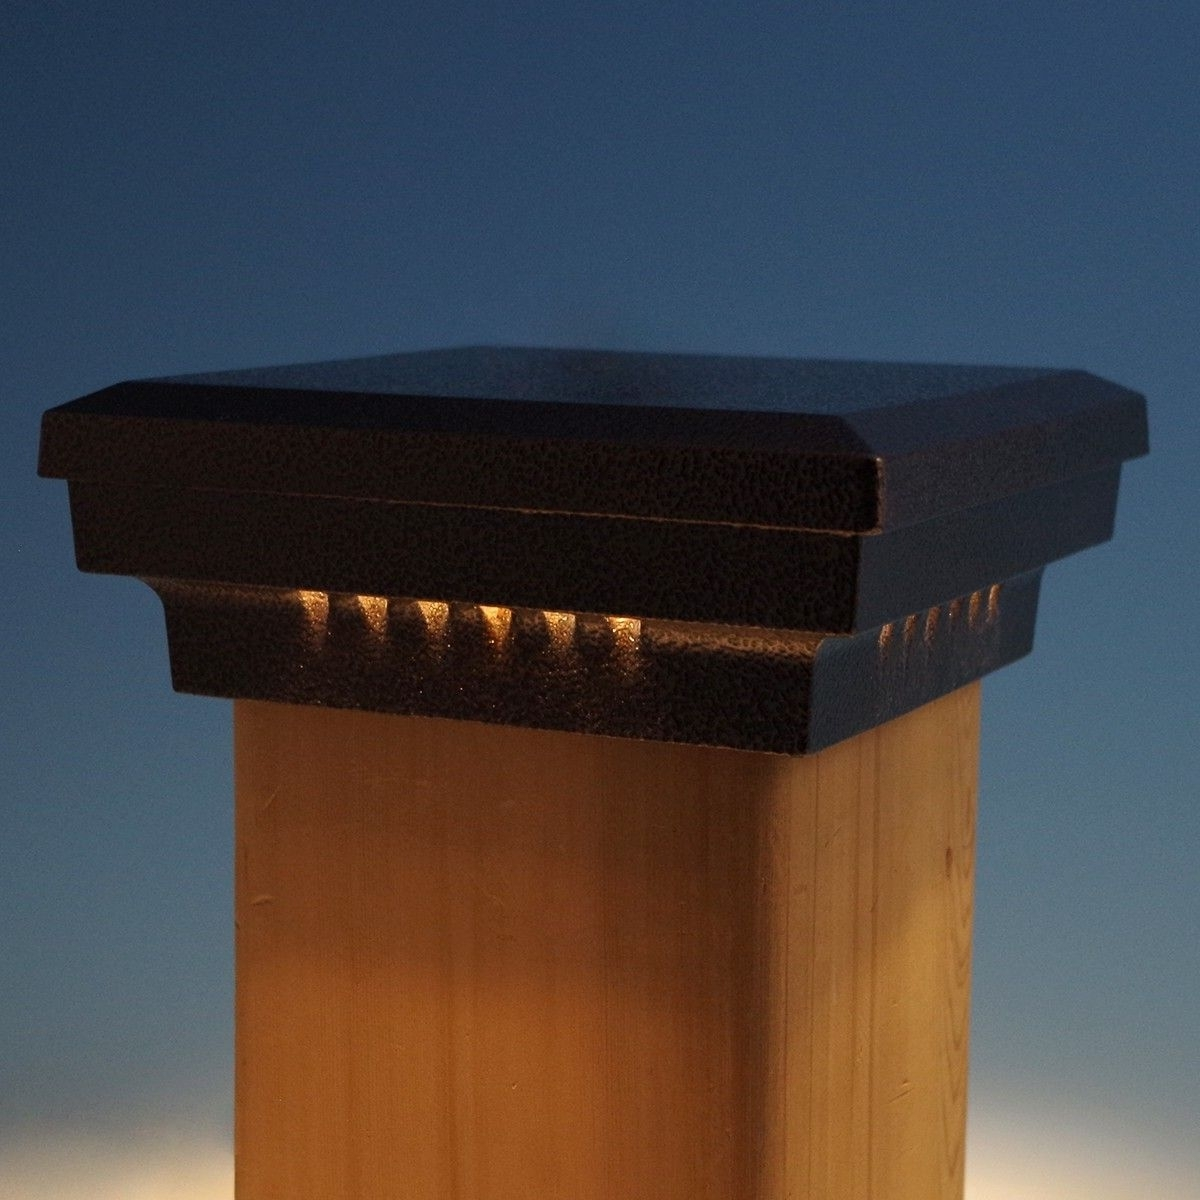 Lights, Fence Throughout Fashionable Low Voltage Led Post Lights (View 11 of 20)